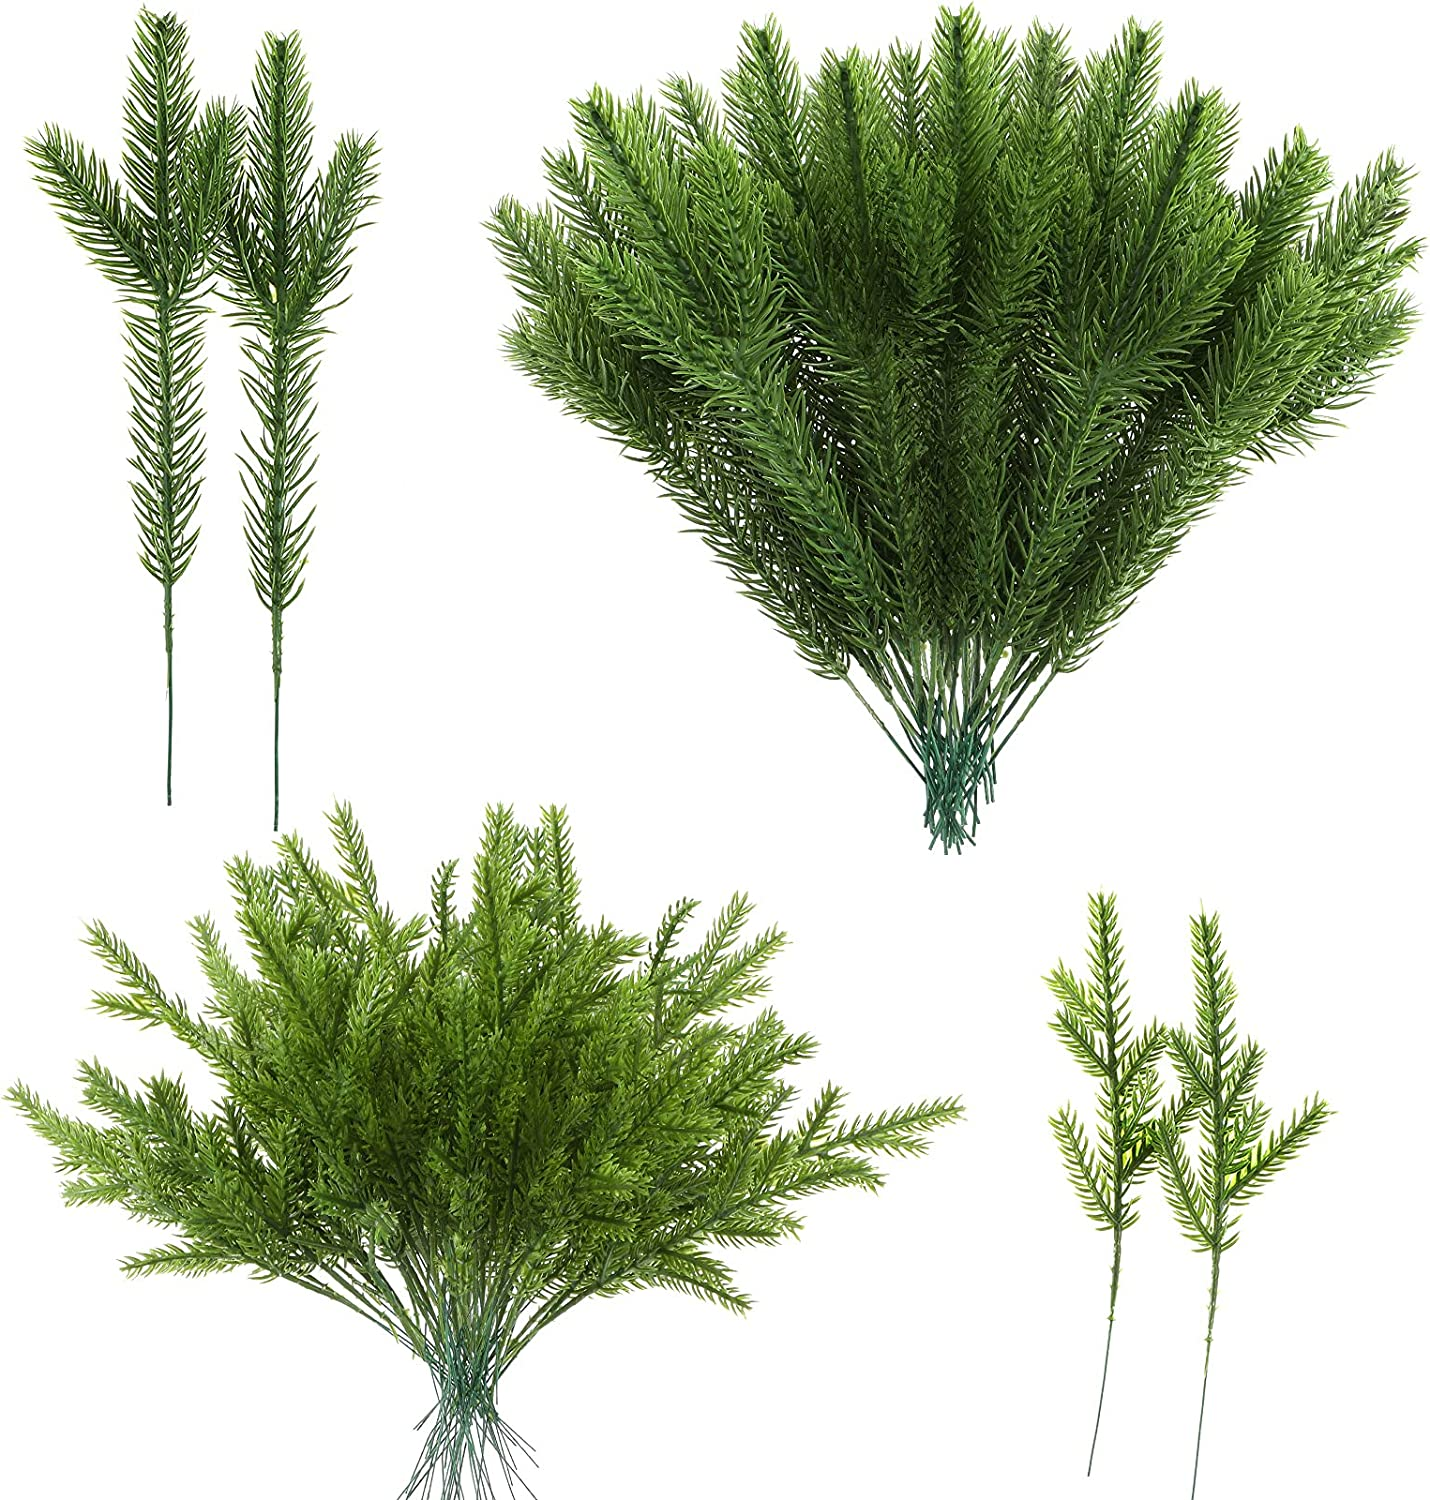 50 Pieces Artificial Pine Needles Branches Christmas Artificial Pine Branches Christmas Tree Branches Fake Greenery Pine Picks for DIY Garland Christmas Home and Party Wall Door Decor, 2 Styles